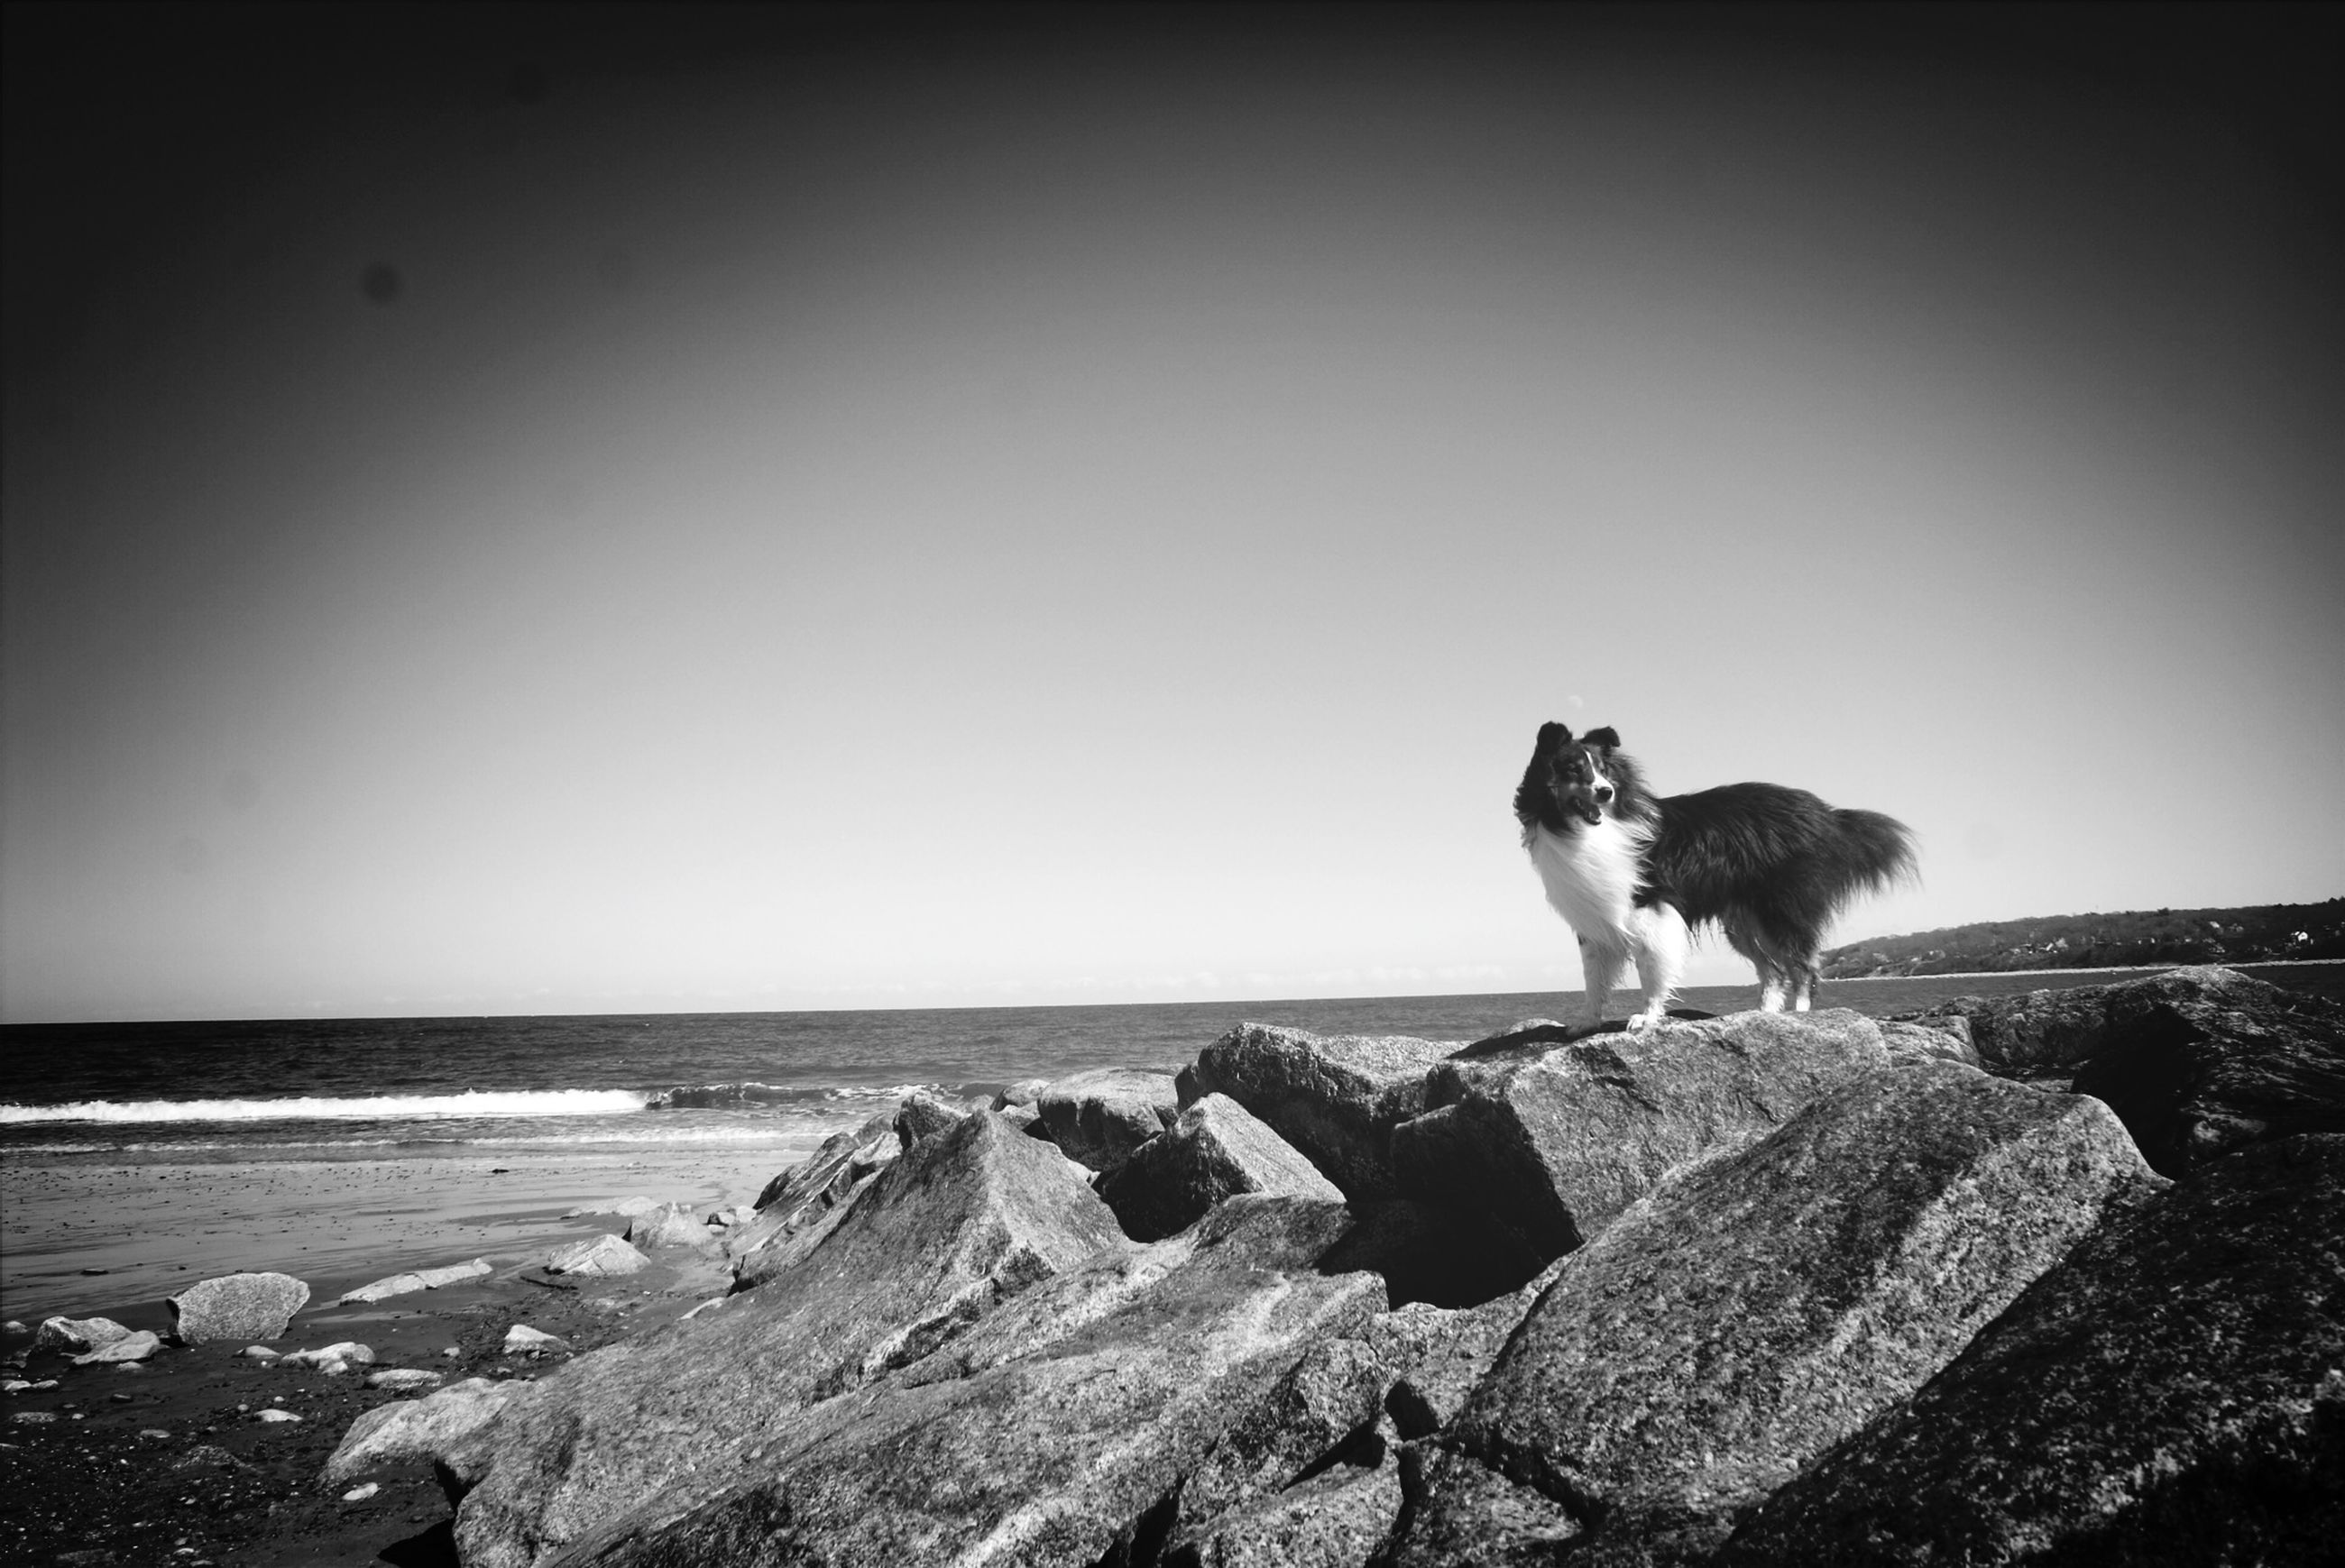 one animal, dog, pets, animal themes, domestic animals, clear sky, copy space, mammal, sea, full length, horizon over water, water, sitting, standing, rock - object, beach, rear view, shore, nature, tranquility